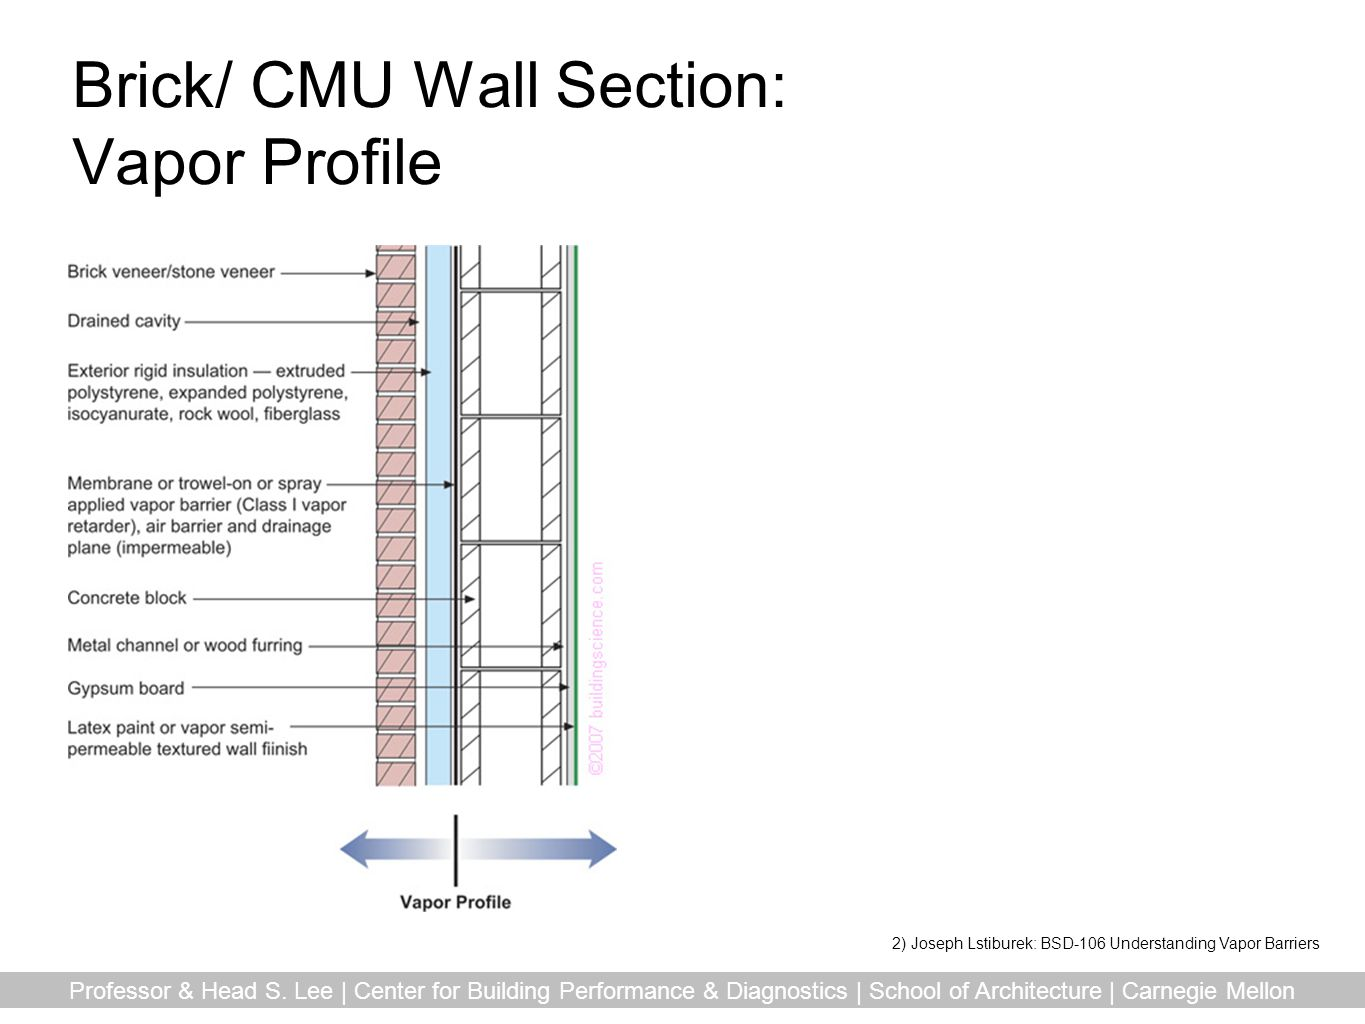 Brick/ CMU Wall Section: Vapor Profile